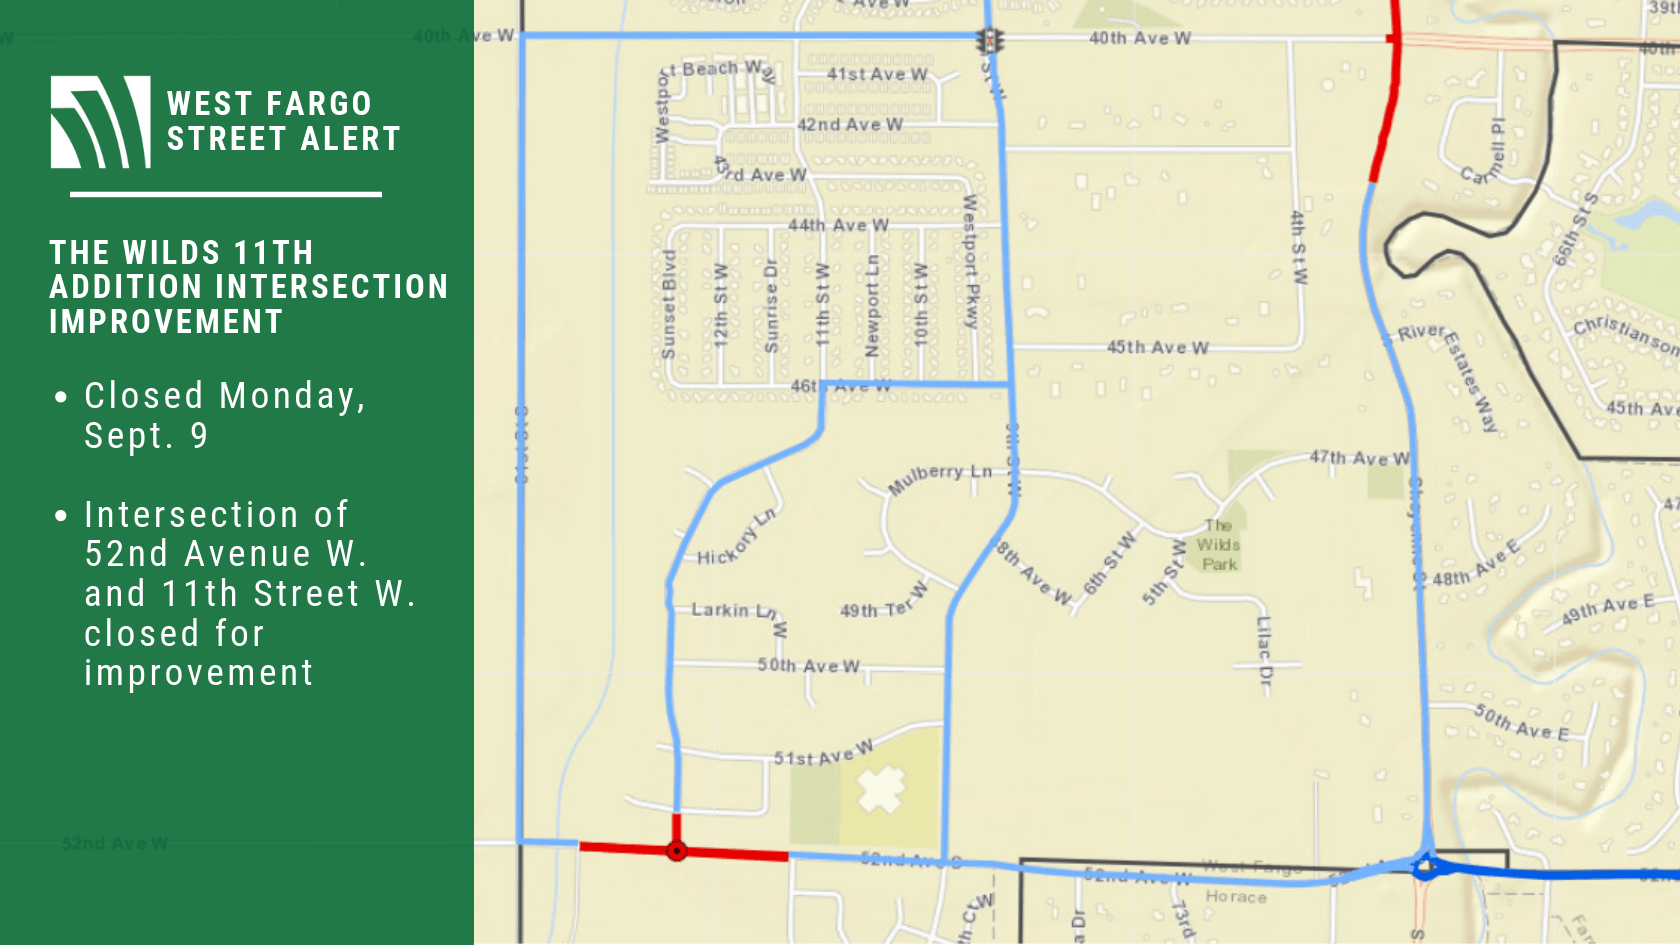 The Wilds 11th Addition Intersection Closure Sept. 9